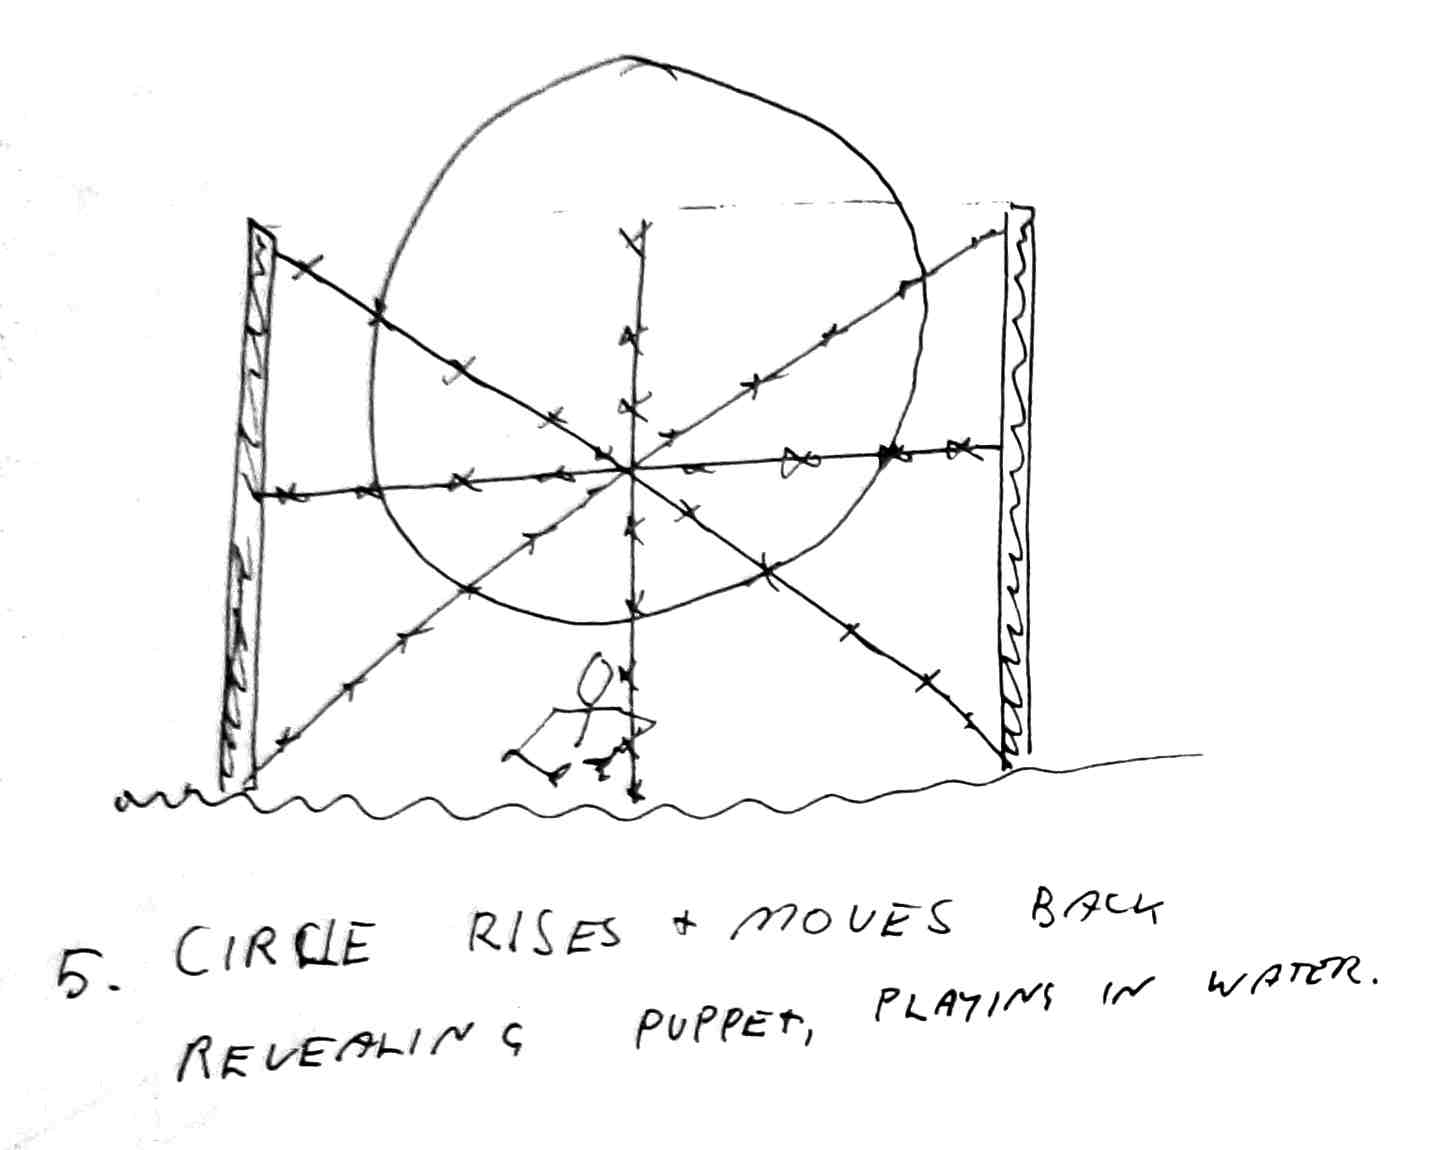 line drawing of barbed wire crossed in Union Jack shape in front of circle with stick figure appearing under the fence